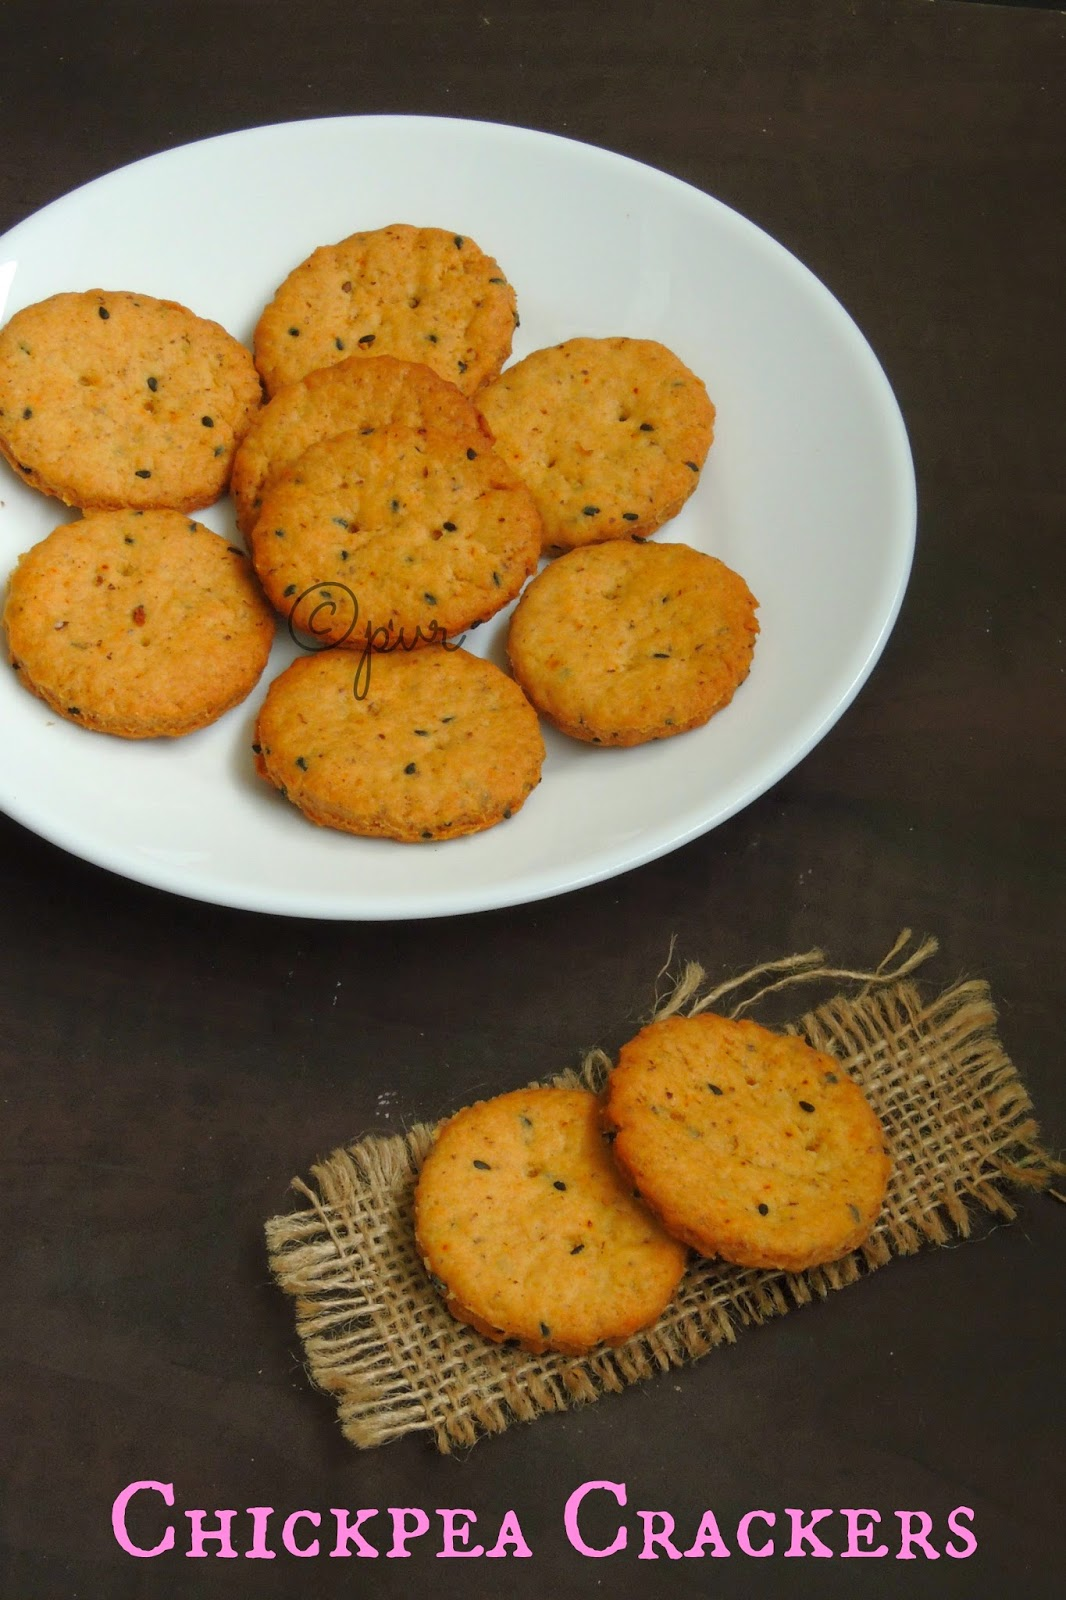 Chickpea crackers with sesame seeds